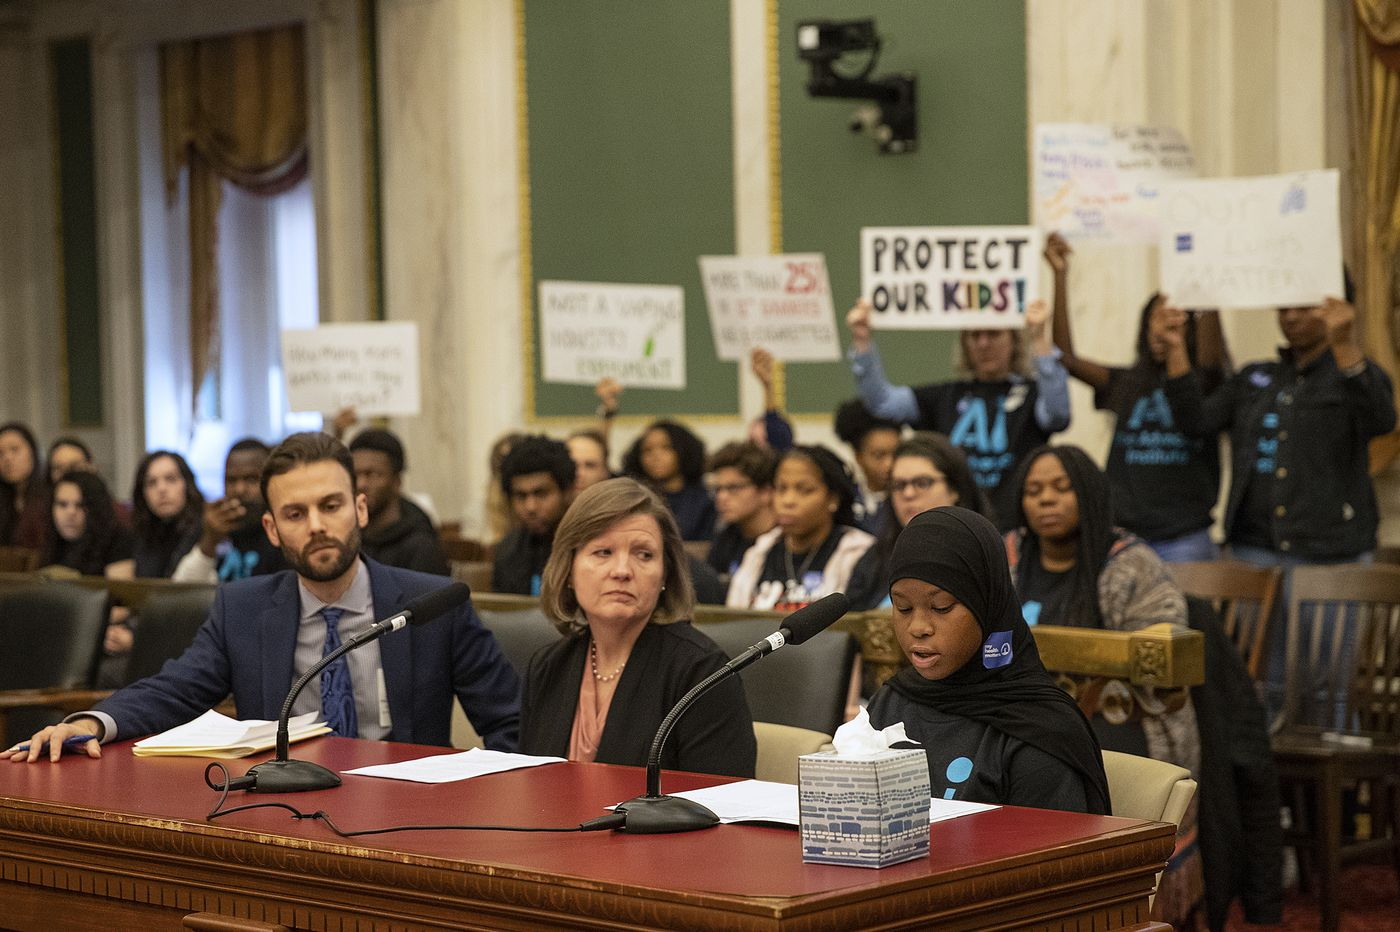 Philly Council hears from physicians, students, business owners on restricting e-cigarette sales